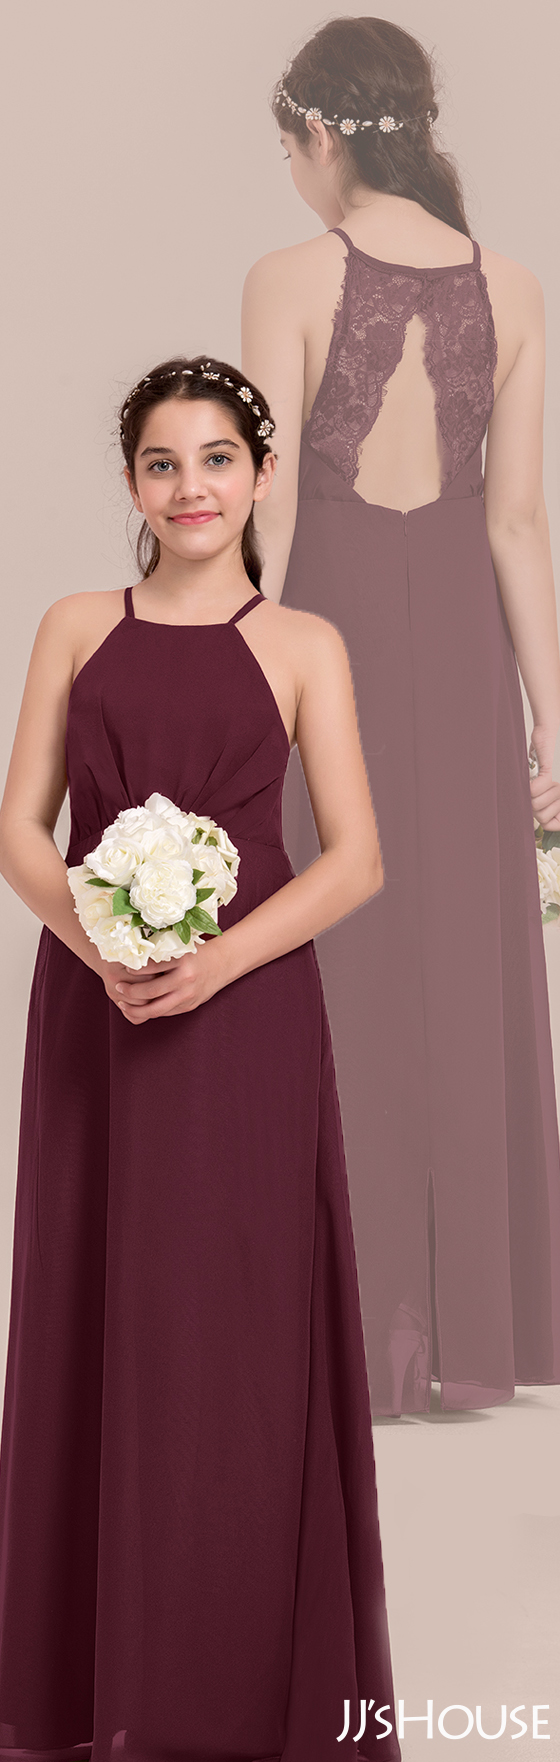 8eb123d1f18 This junior bridesmaid dress has a classic design in the front and a special  back design!  JJsHouse  Junior  Bridesmaid